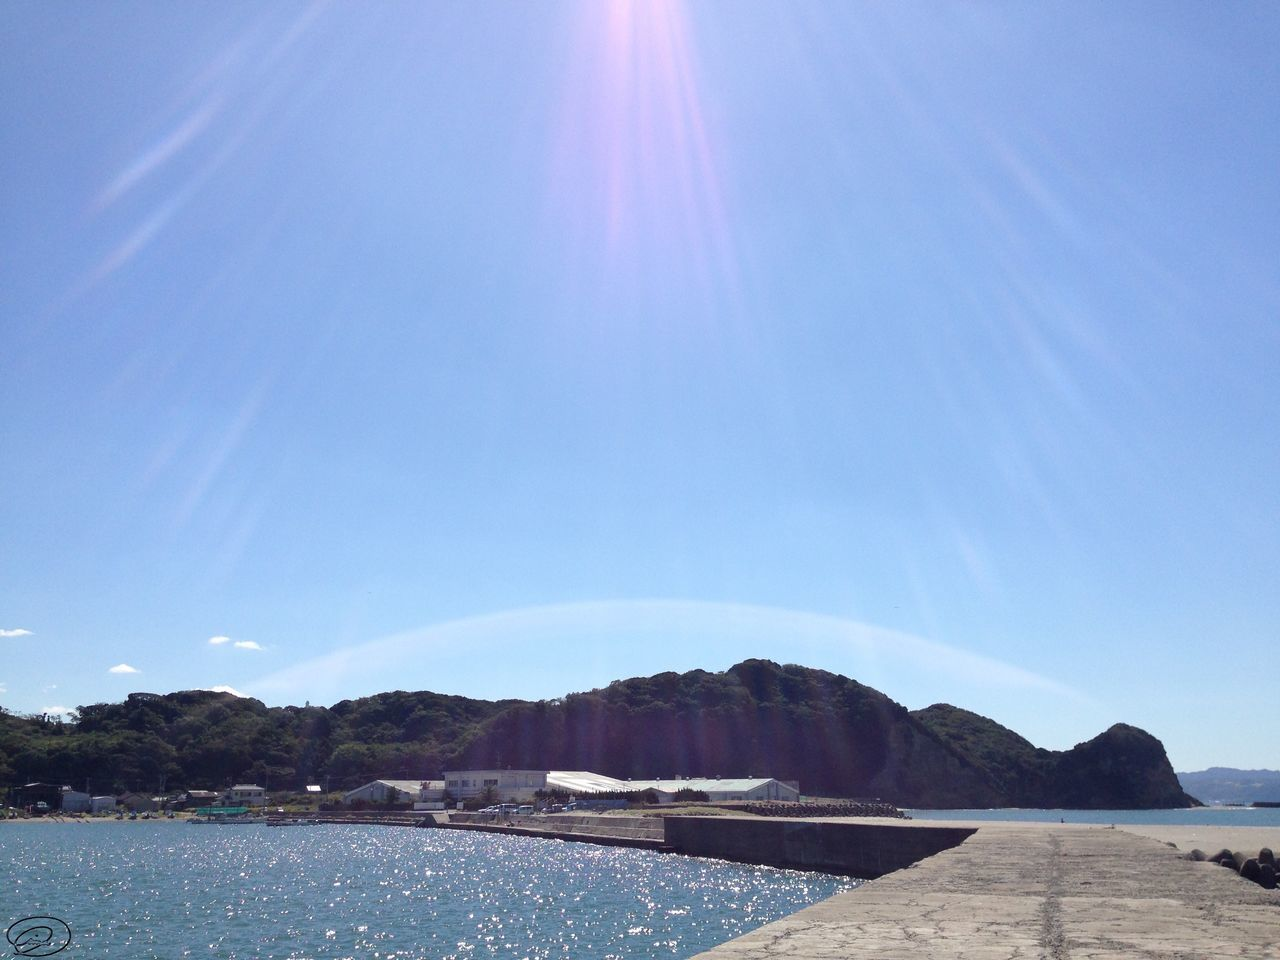 Blue Sky Nature Tranquility Water Scenics Tranquil Scene Beauty In Nature Sunlight Outdoors Sunbeam Mountain Sea Sun Day No People Landscape Architecture Japan Japan Photography Adventure